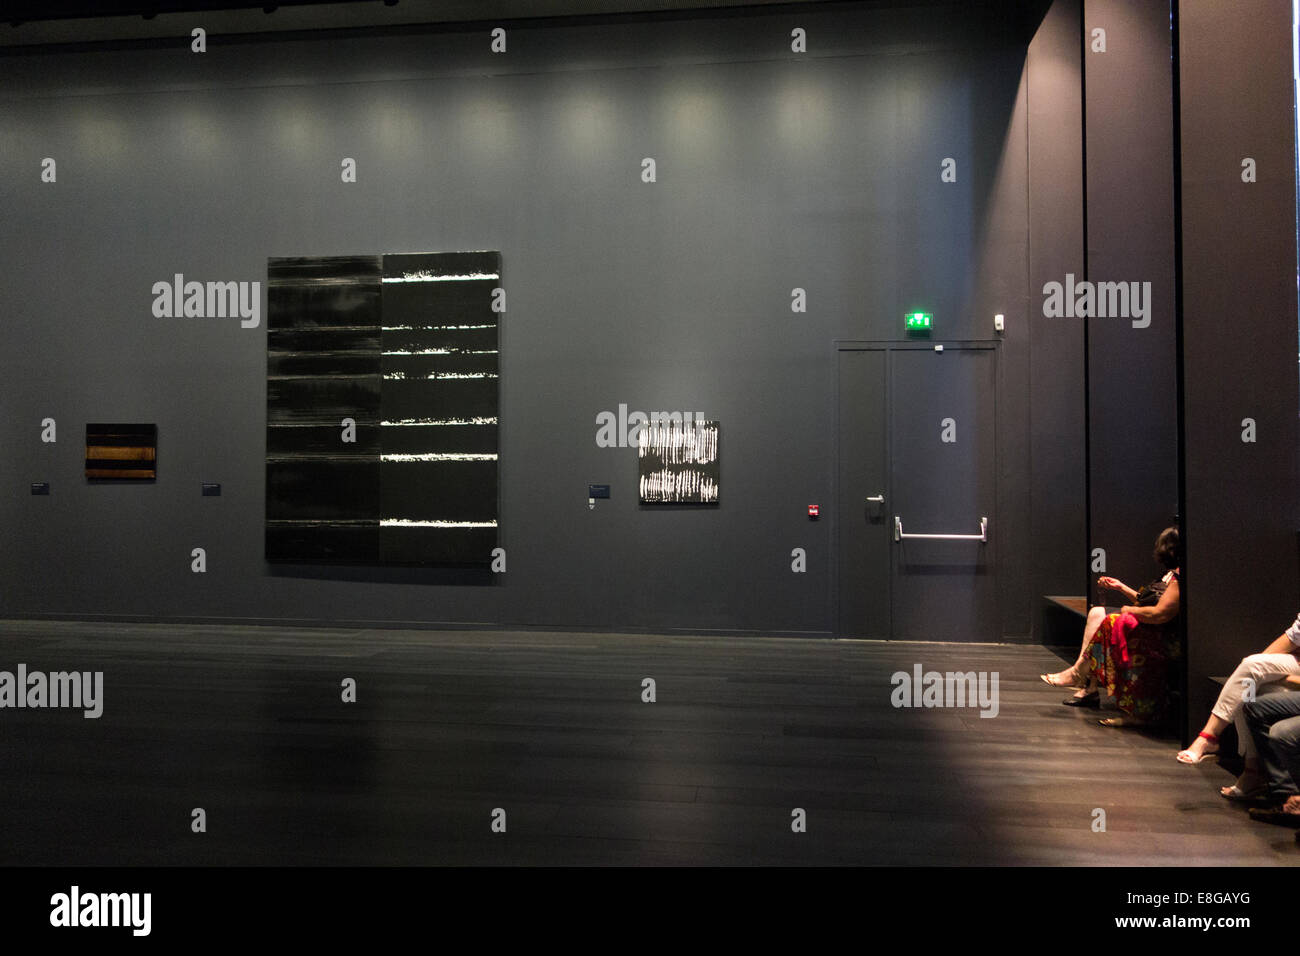 Gallery of the Soulages Museum showing art works exhibition by local French artist Pierre Soulages in Rodez Aveyron - Stock Image